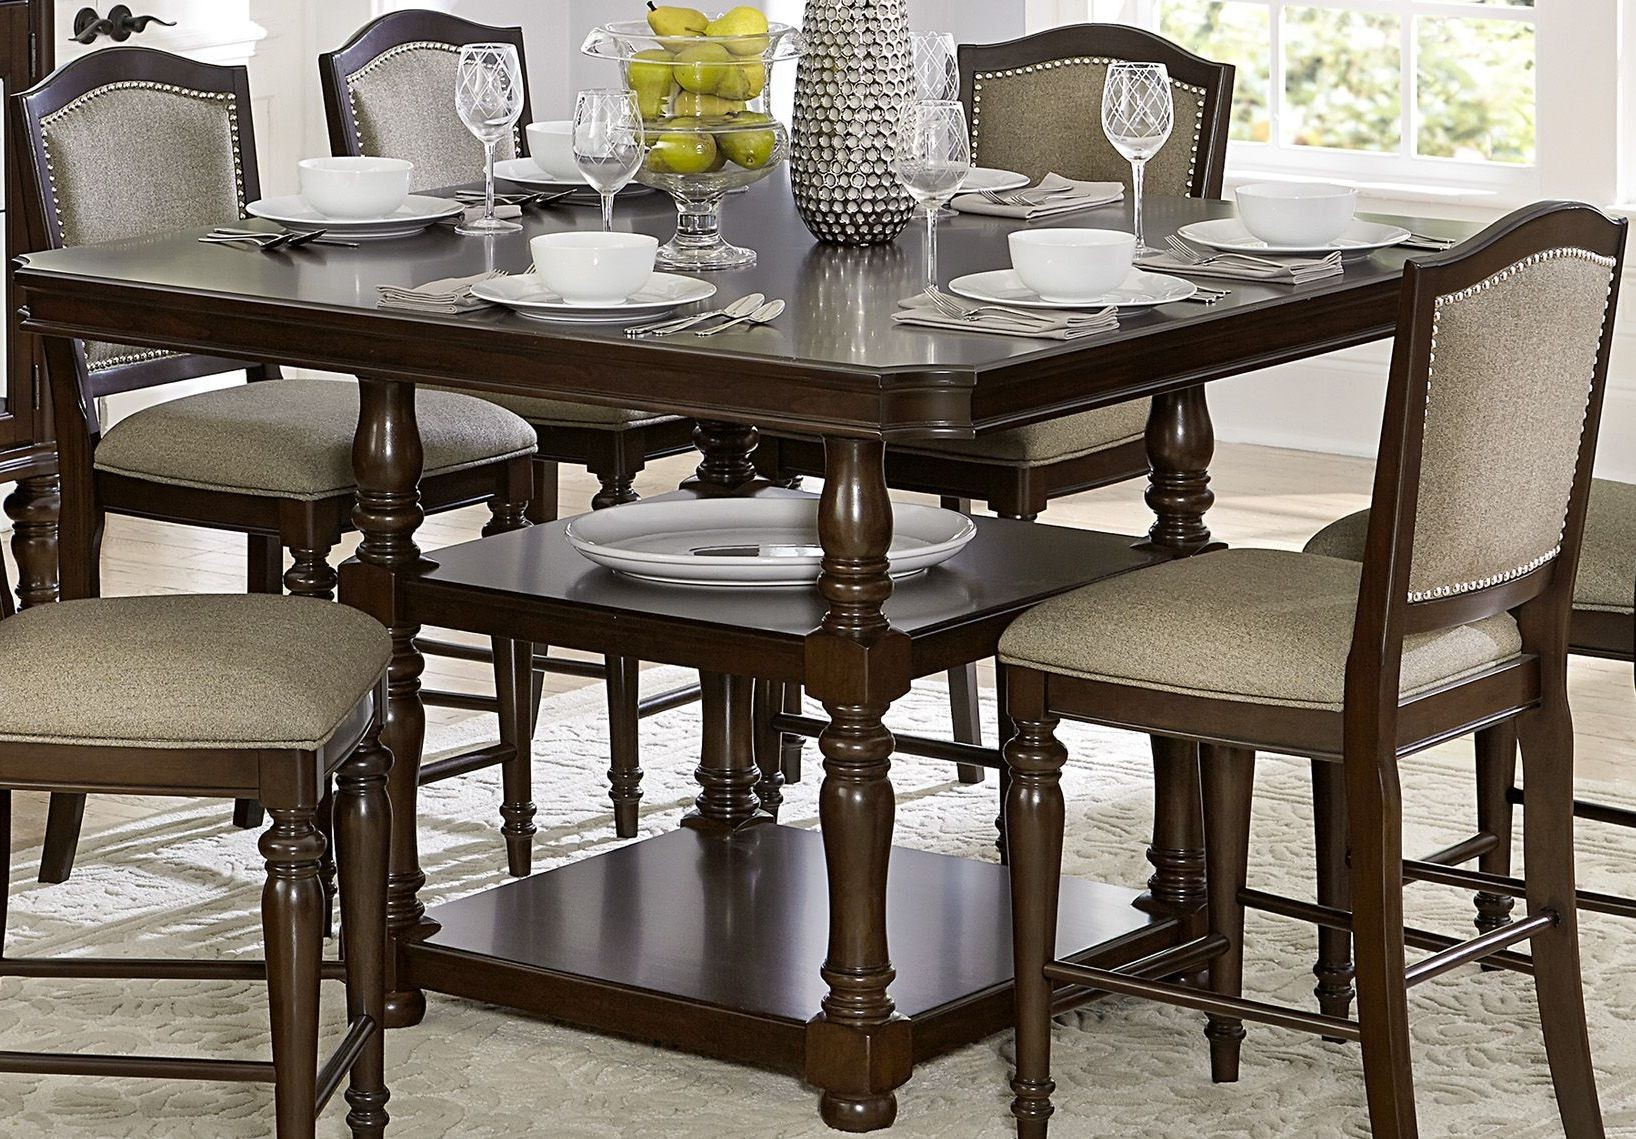 Counter Height Dining Tables: Marston Brown Counter Height Dining Table From Homelegance